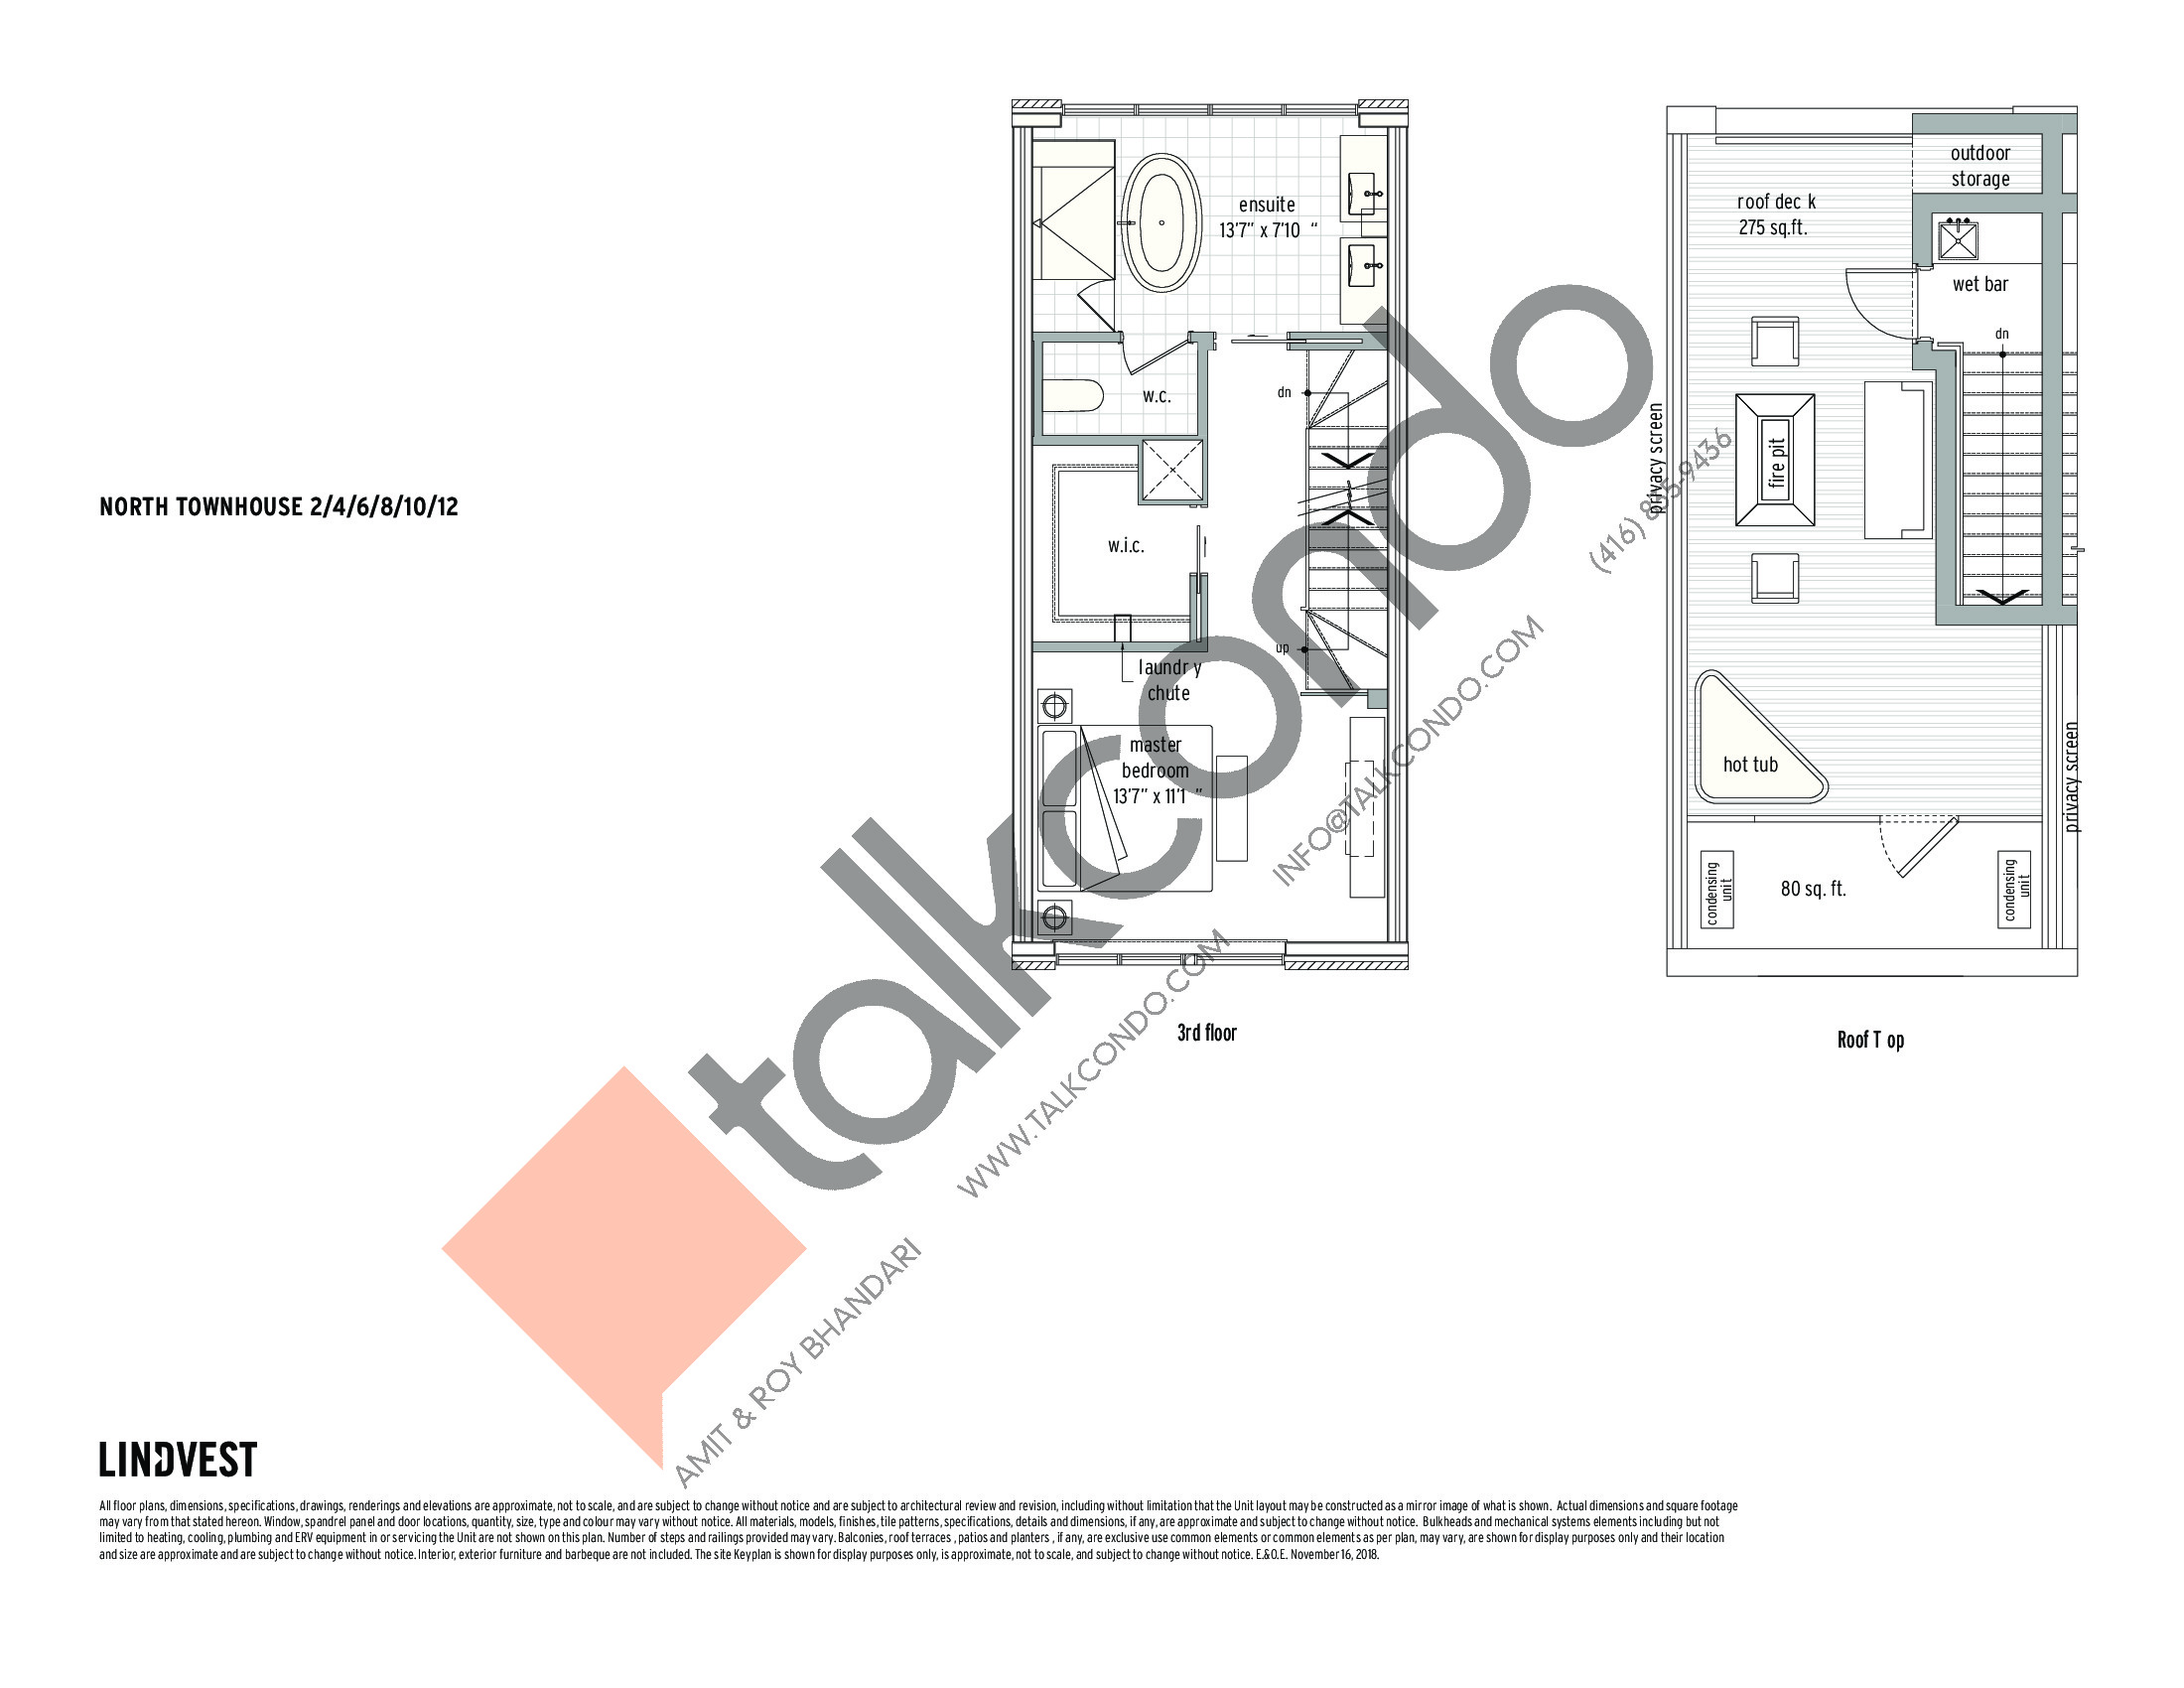 North Townhouse - 2 / 4 / 6 / 8 / 10 / 12 (2/2) Floor Plan at UltraSonic Towns - 1460 sq.ft